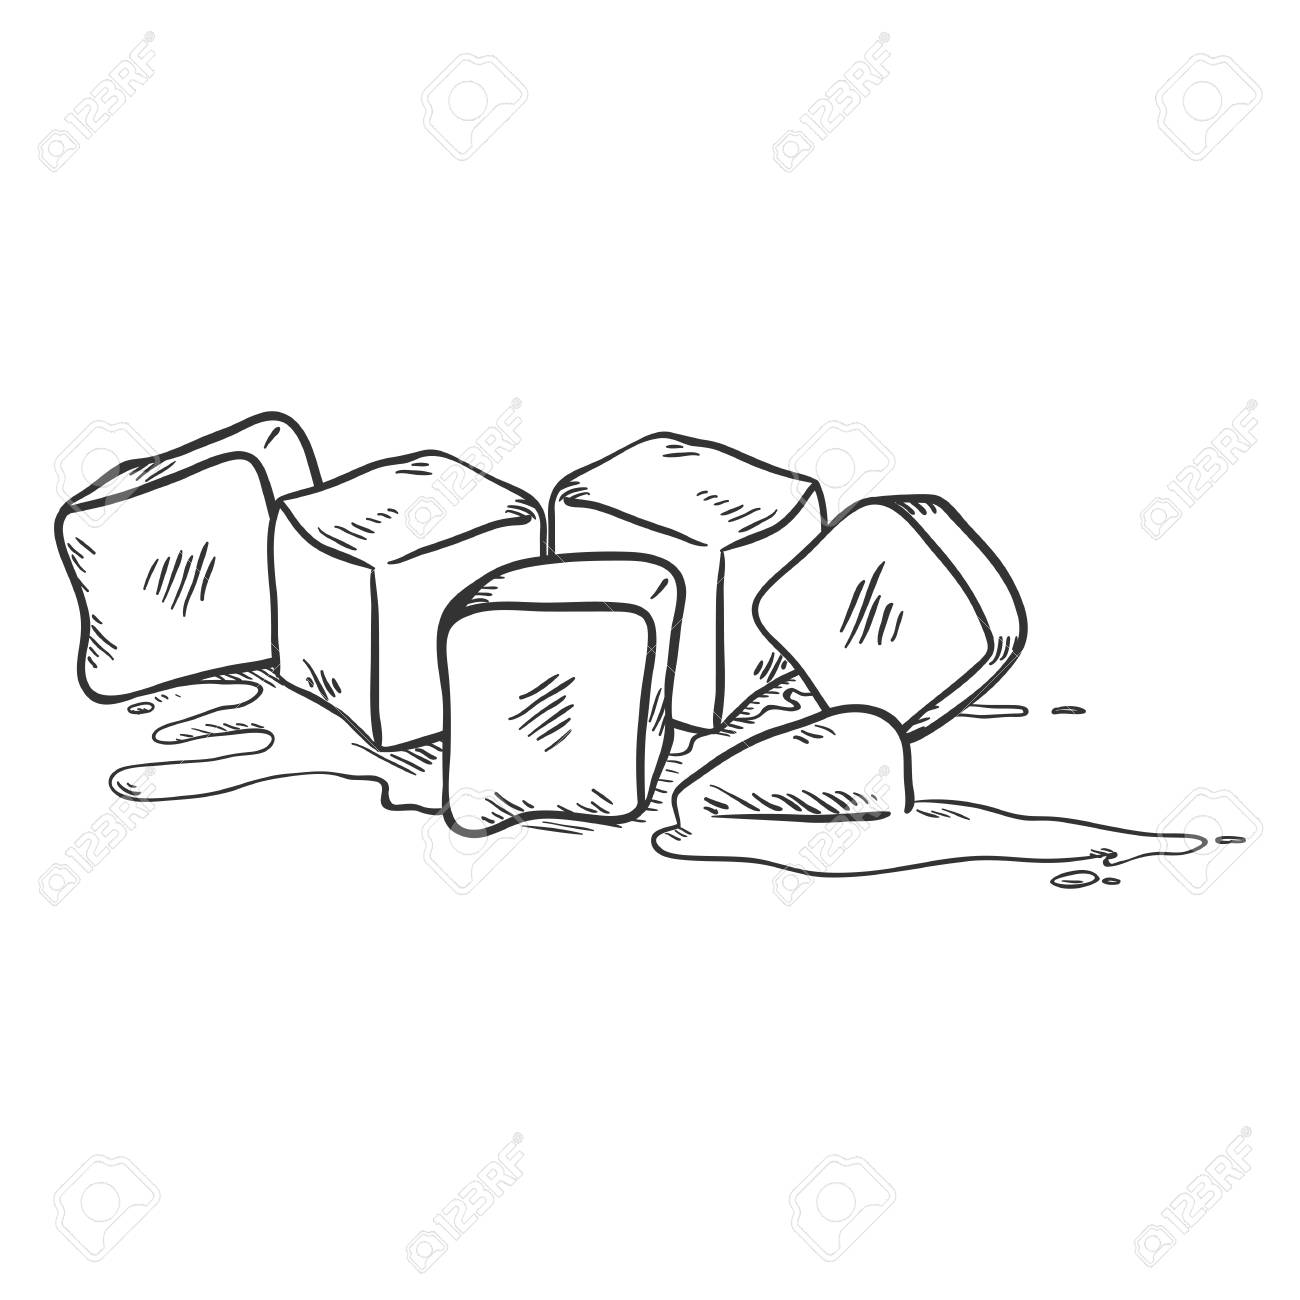 vector black sketch illustration ice cubes melting royalty free cliparts vectors and stock illustration image 99617390 vector black sketch illustration ice cubes melting